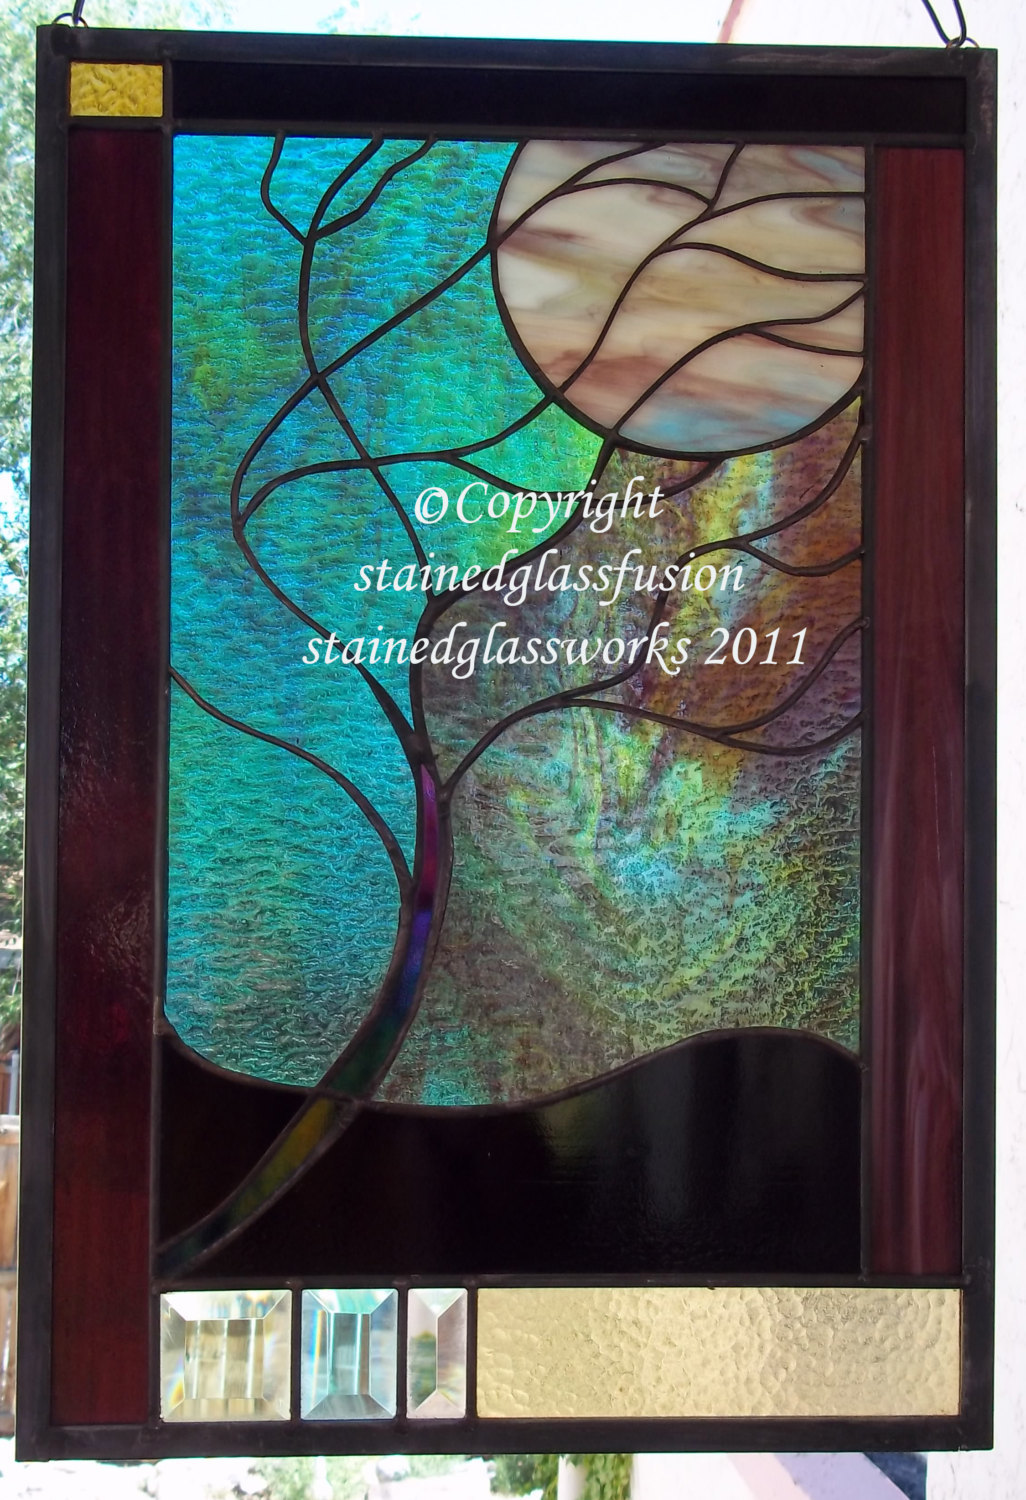 Stained Glass moonlit tree window panel turquoise glass beveled turquoise green